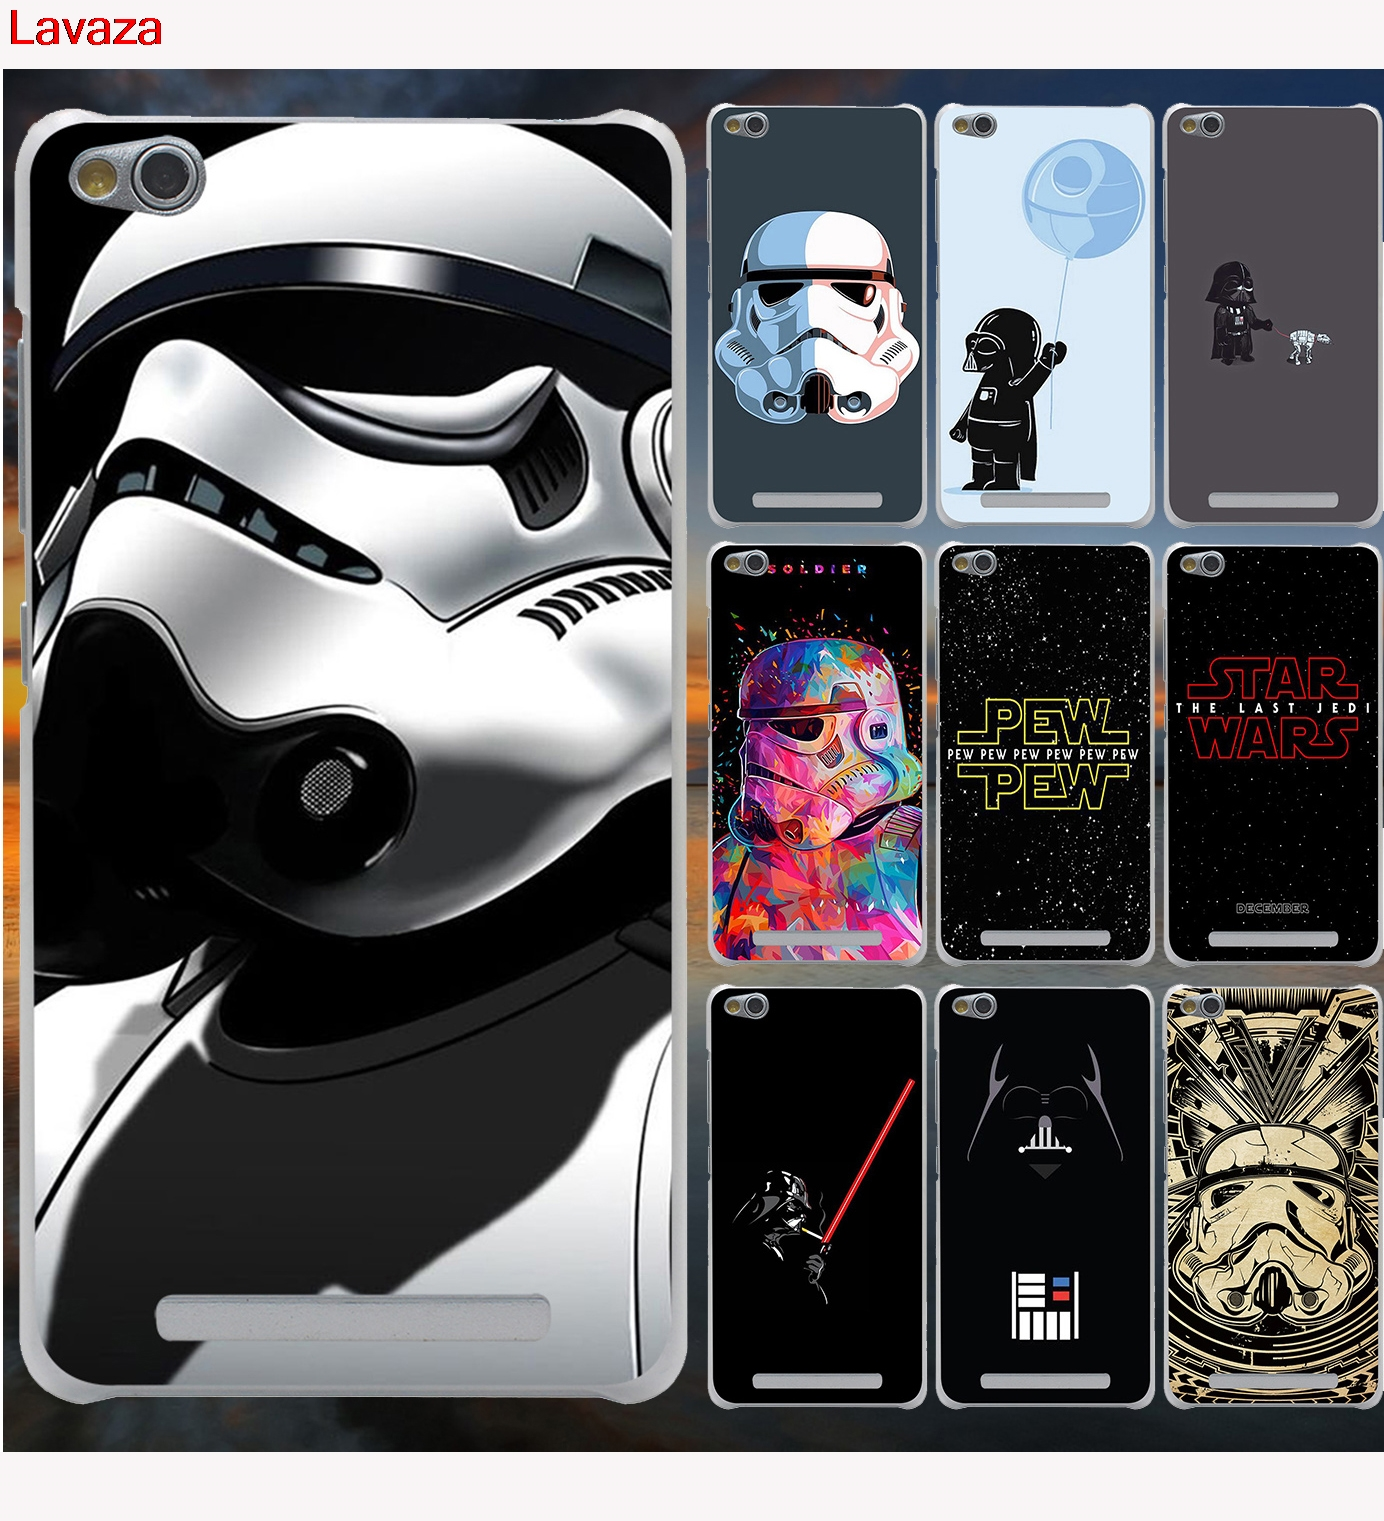 Lavaza star wars logo Case for Xiaomi Redmi 3 3S 4 6 Pro S2 4A 5A 5 Plus Note 5A Prime Note 3 5 Pro 4 4X Cover in Half wrapped Case from Cellphones